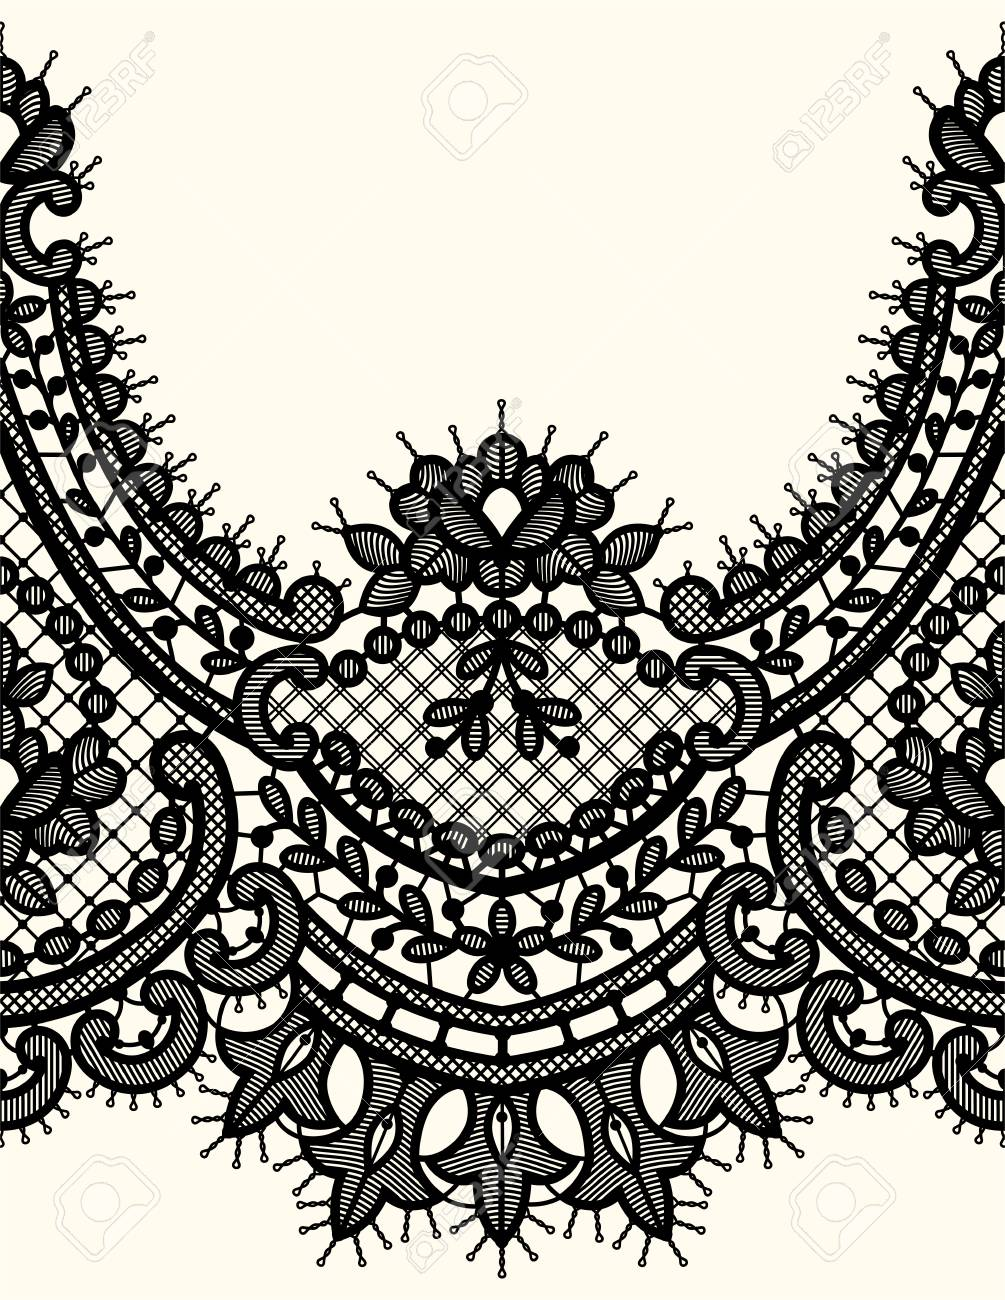 Seamless Black And White Horizontal Lace Vector Pattern. Royalty Free  Cliparts, Vectors, And Stock Illustration. Image 61847197.   1300x1005